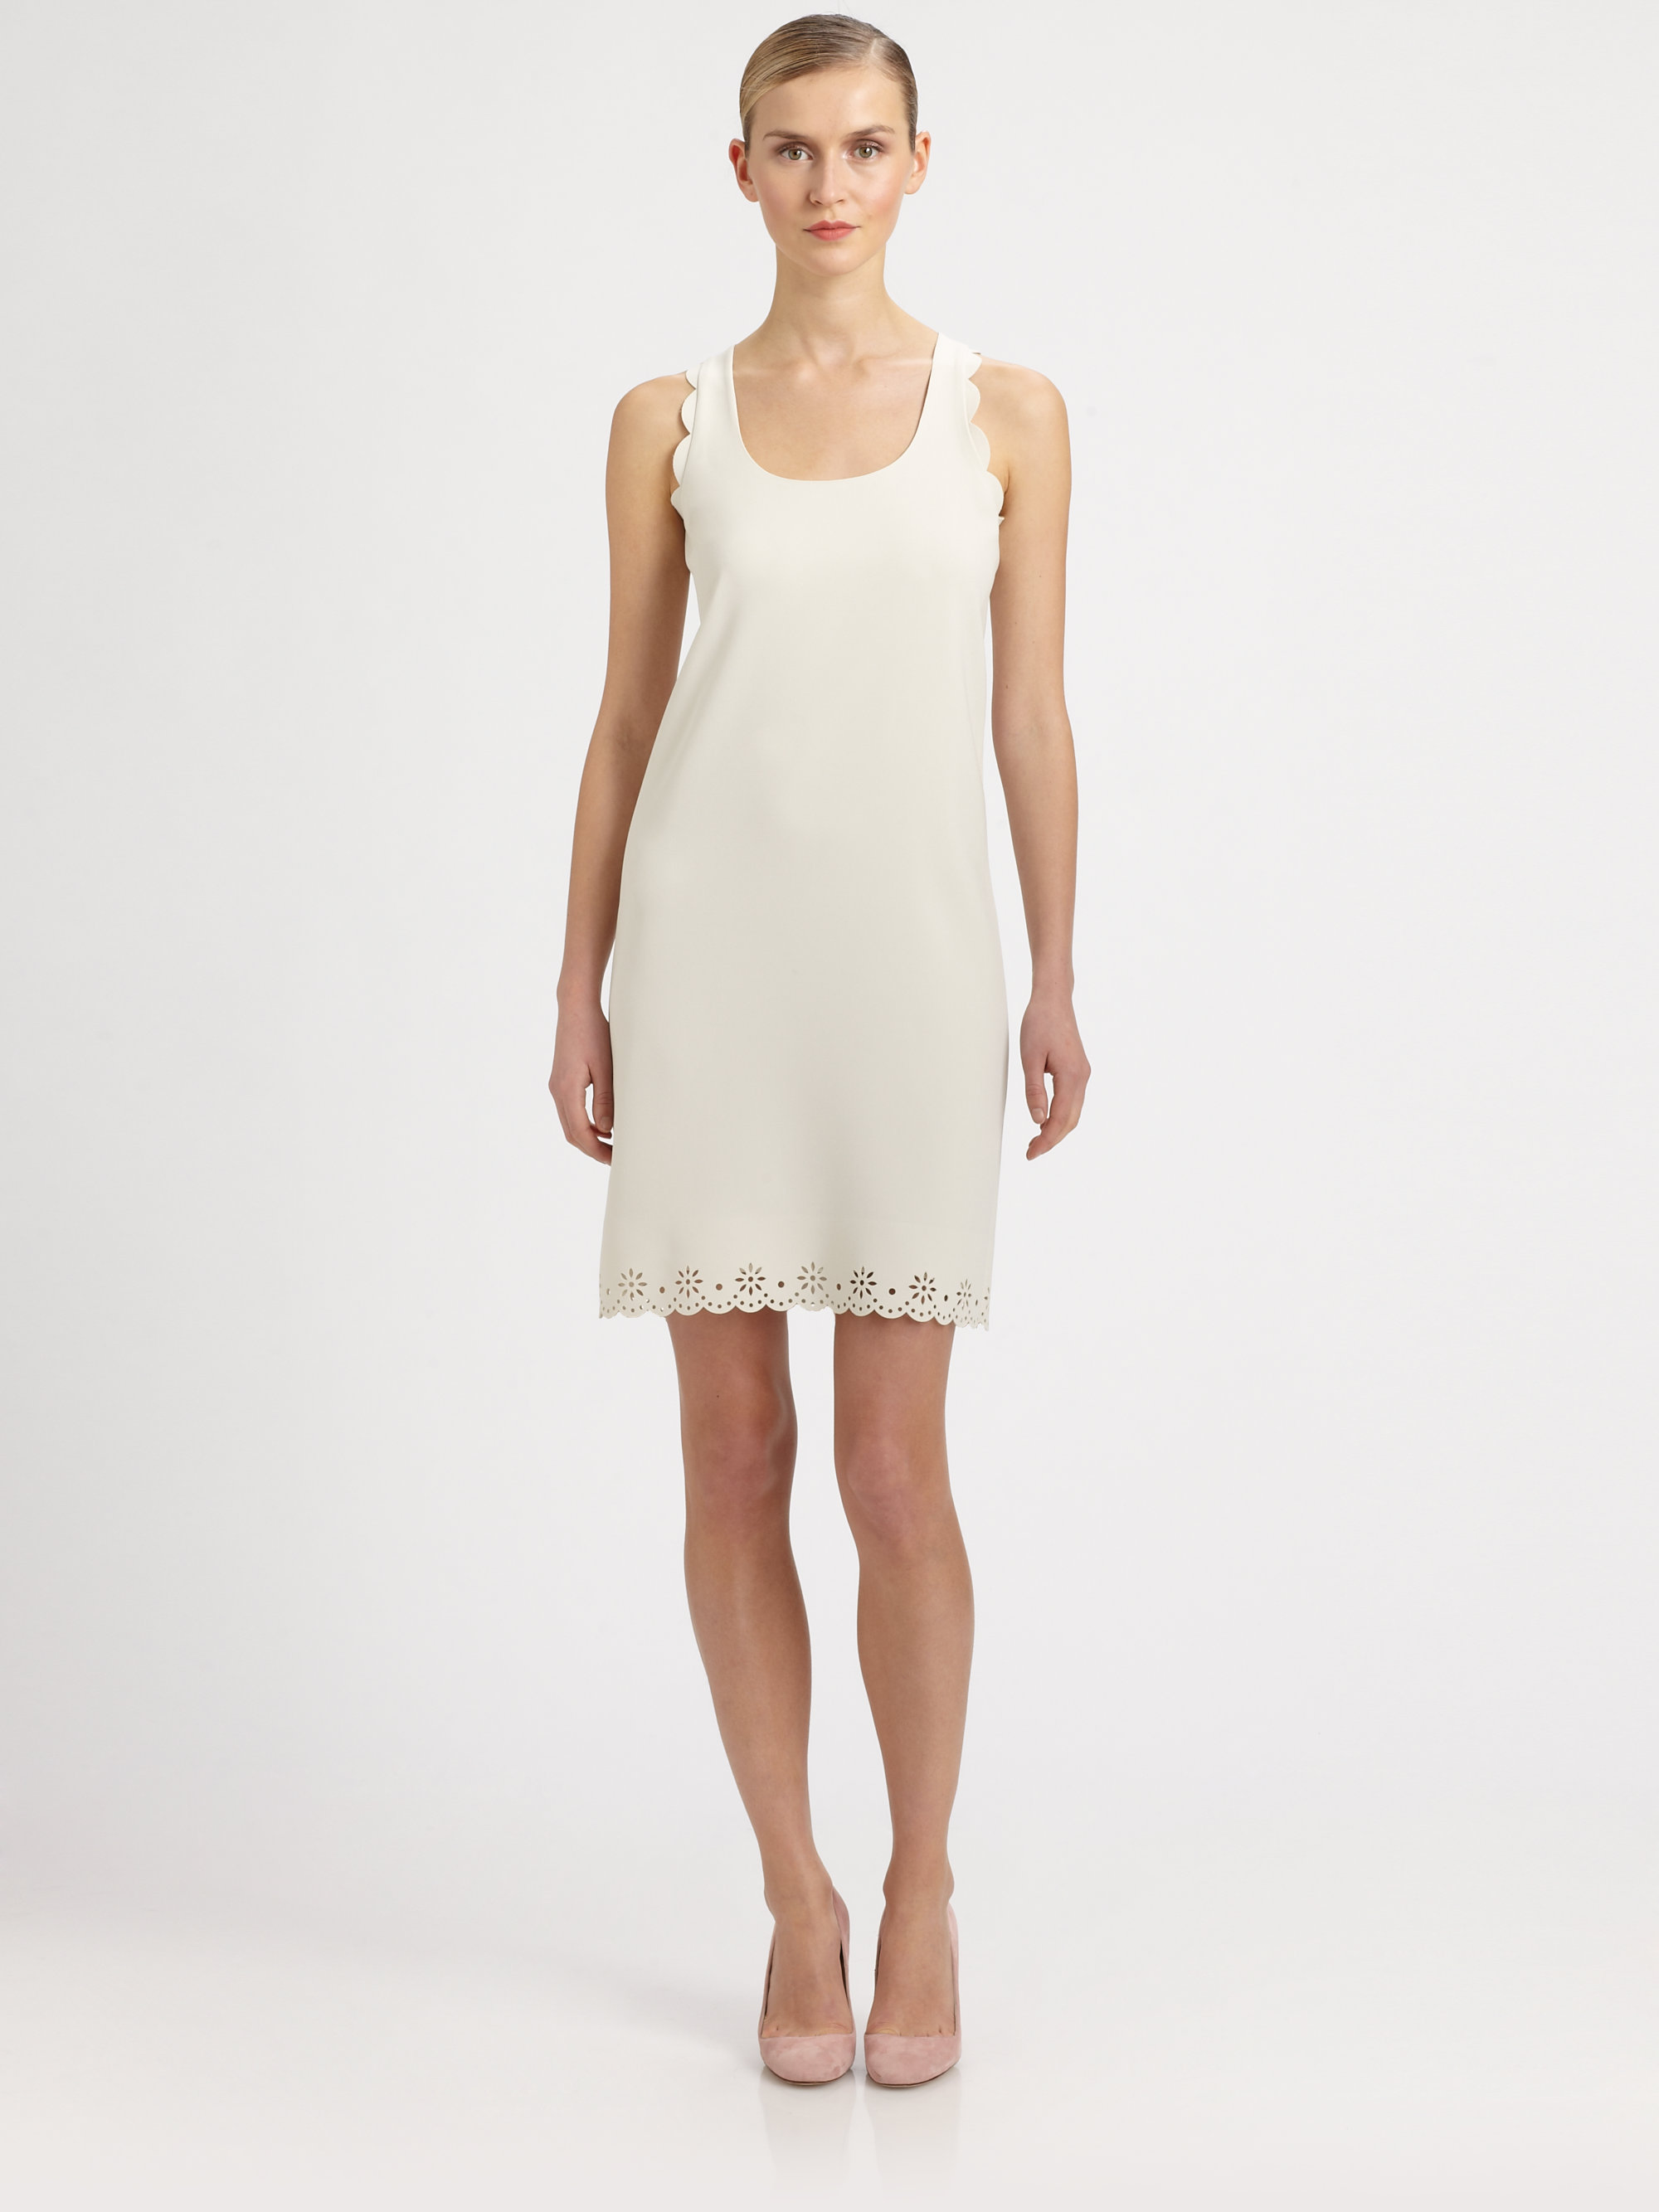 Moschino Cheap Chic Scallop Dress In White Lyst